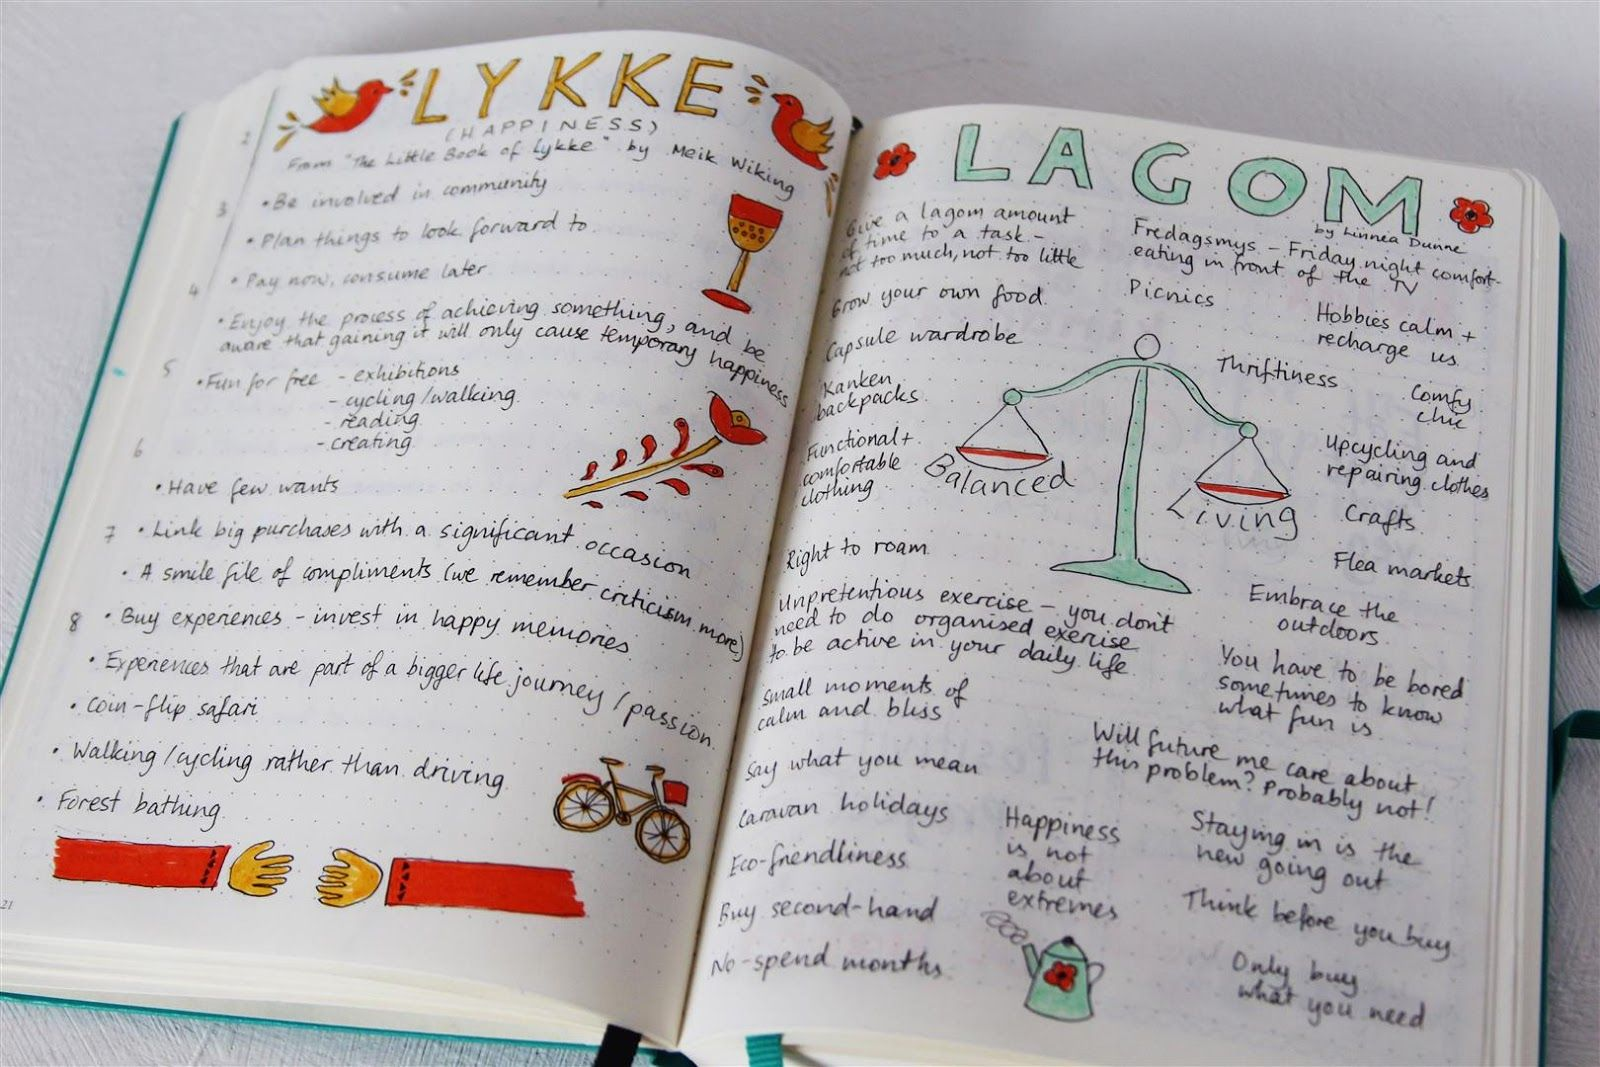 Bullet journal ideas Notes from books